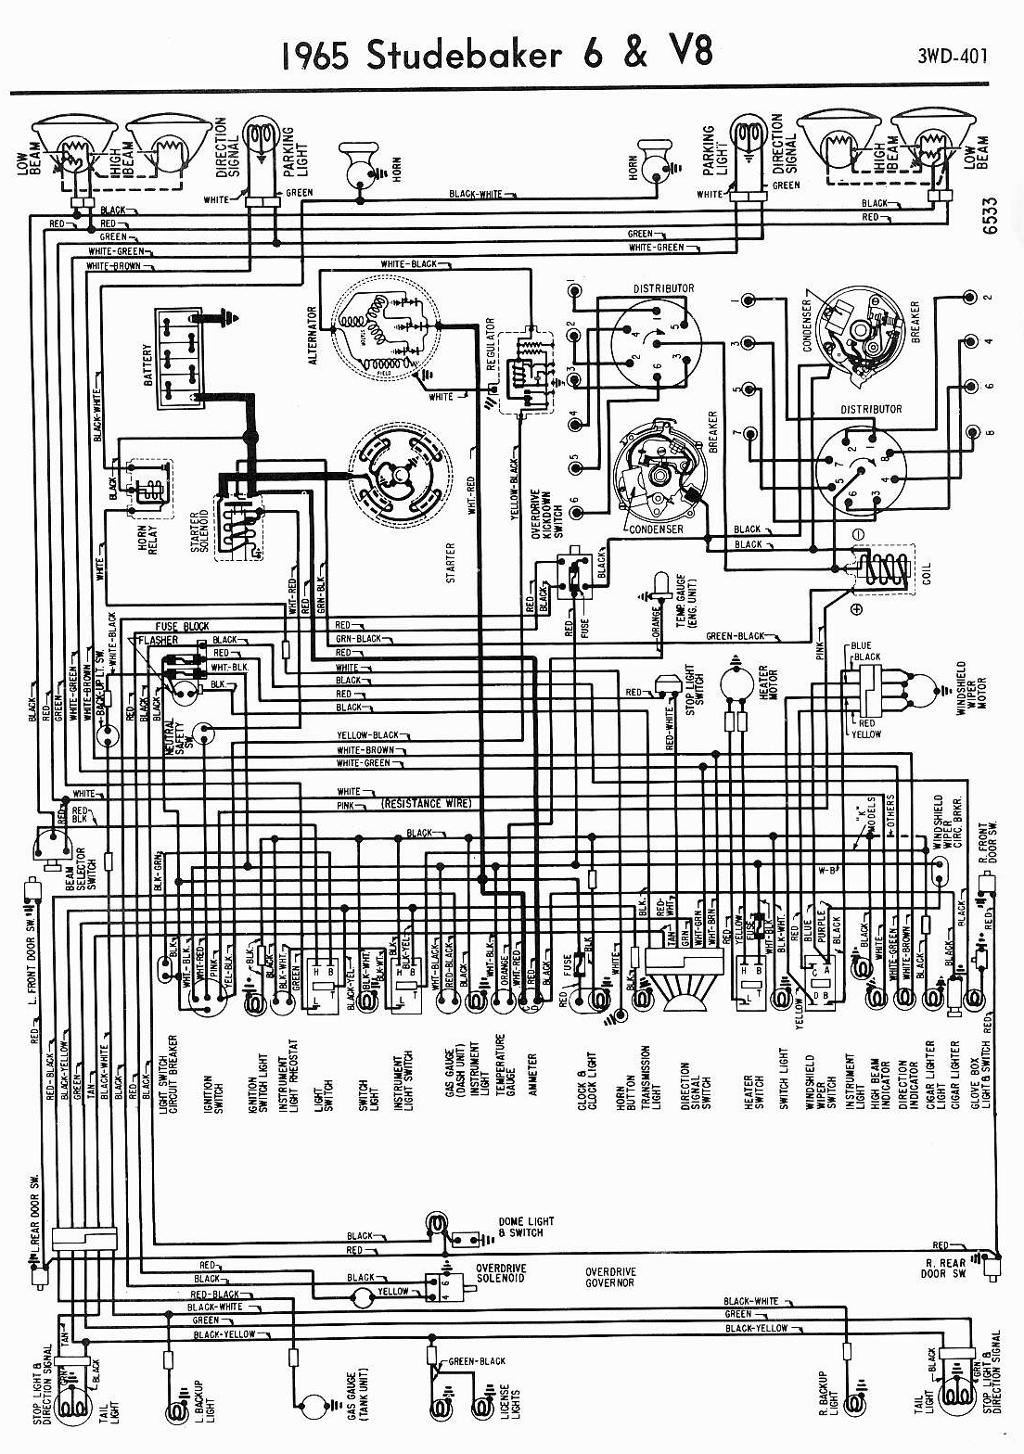 Studebaker Car Manuals Wiring Diagrams Pdf Fault Codes 1949 Chrysler Diagram Download